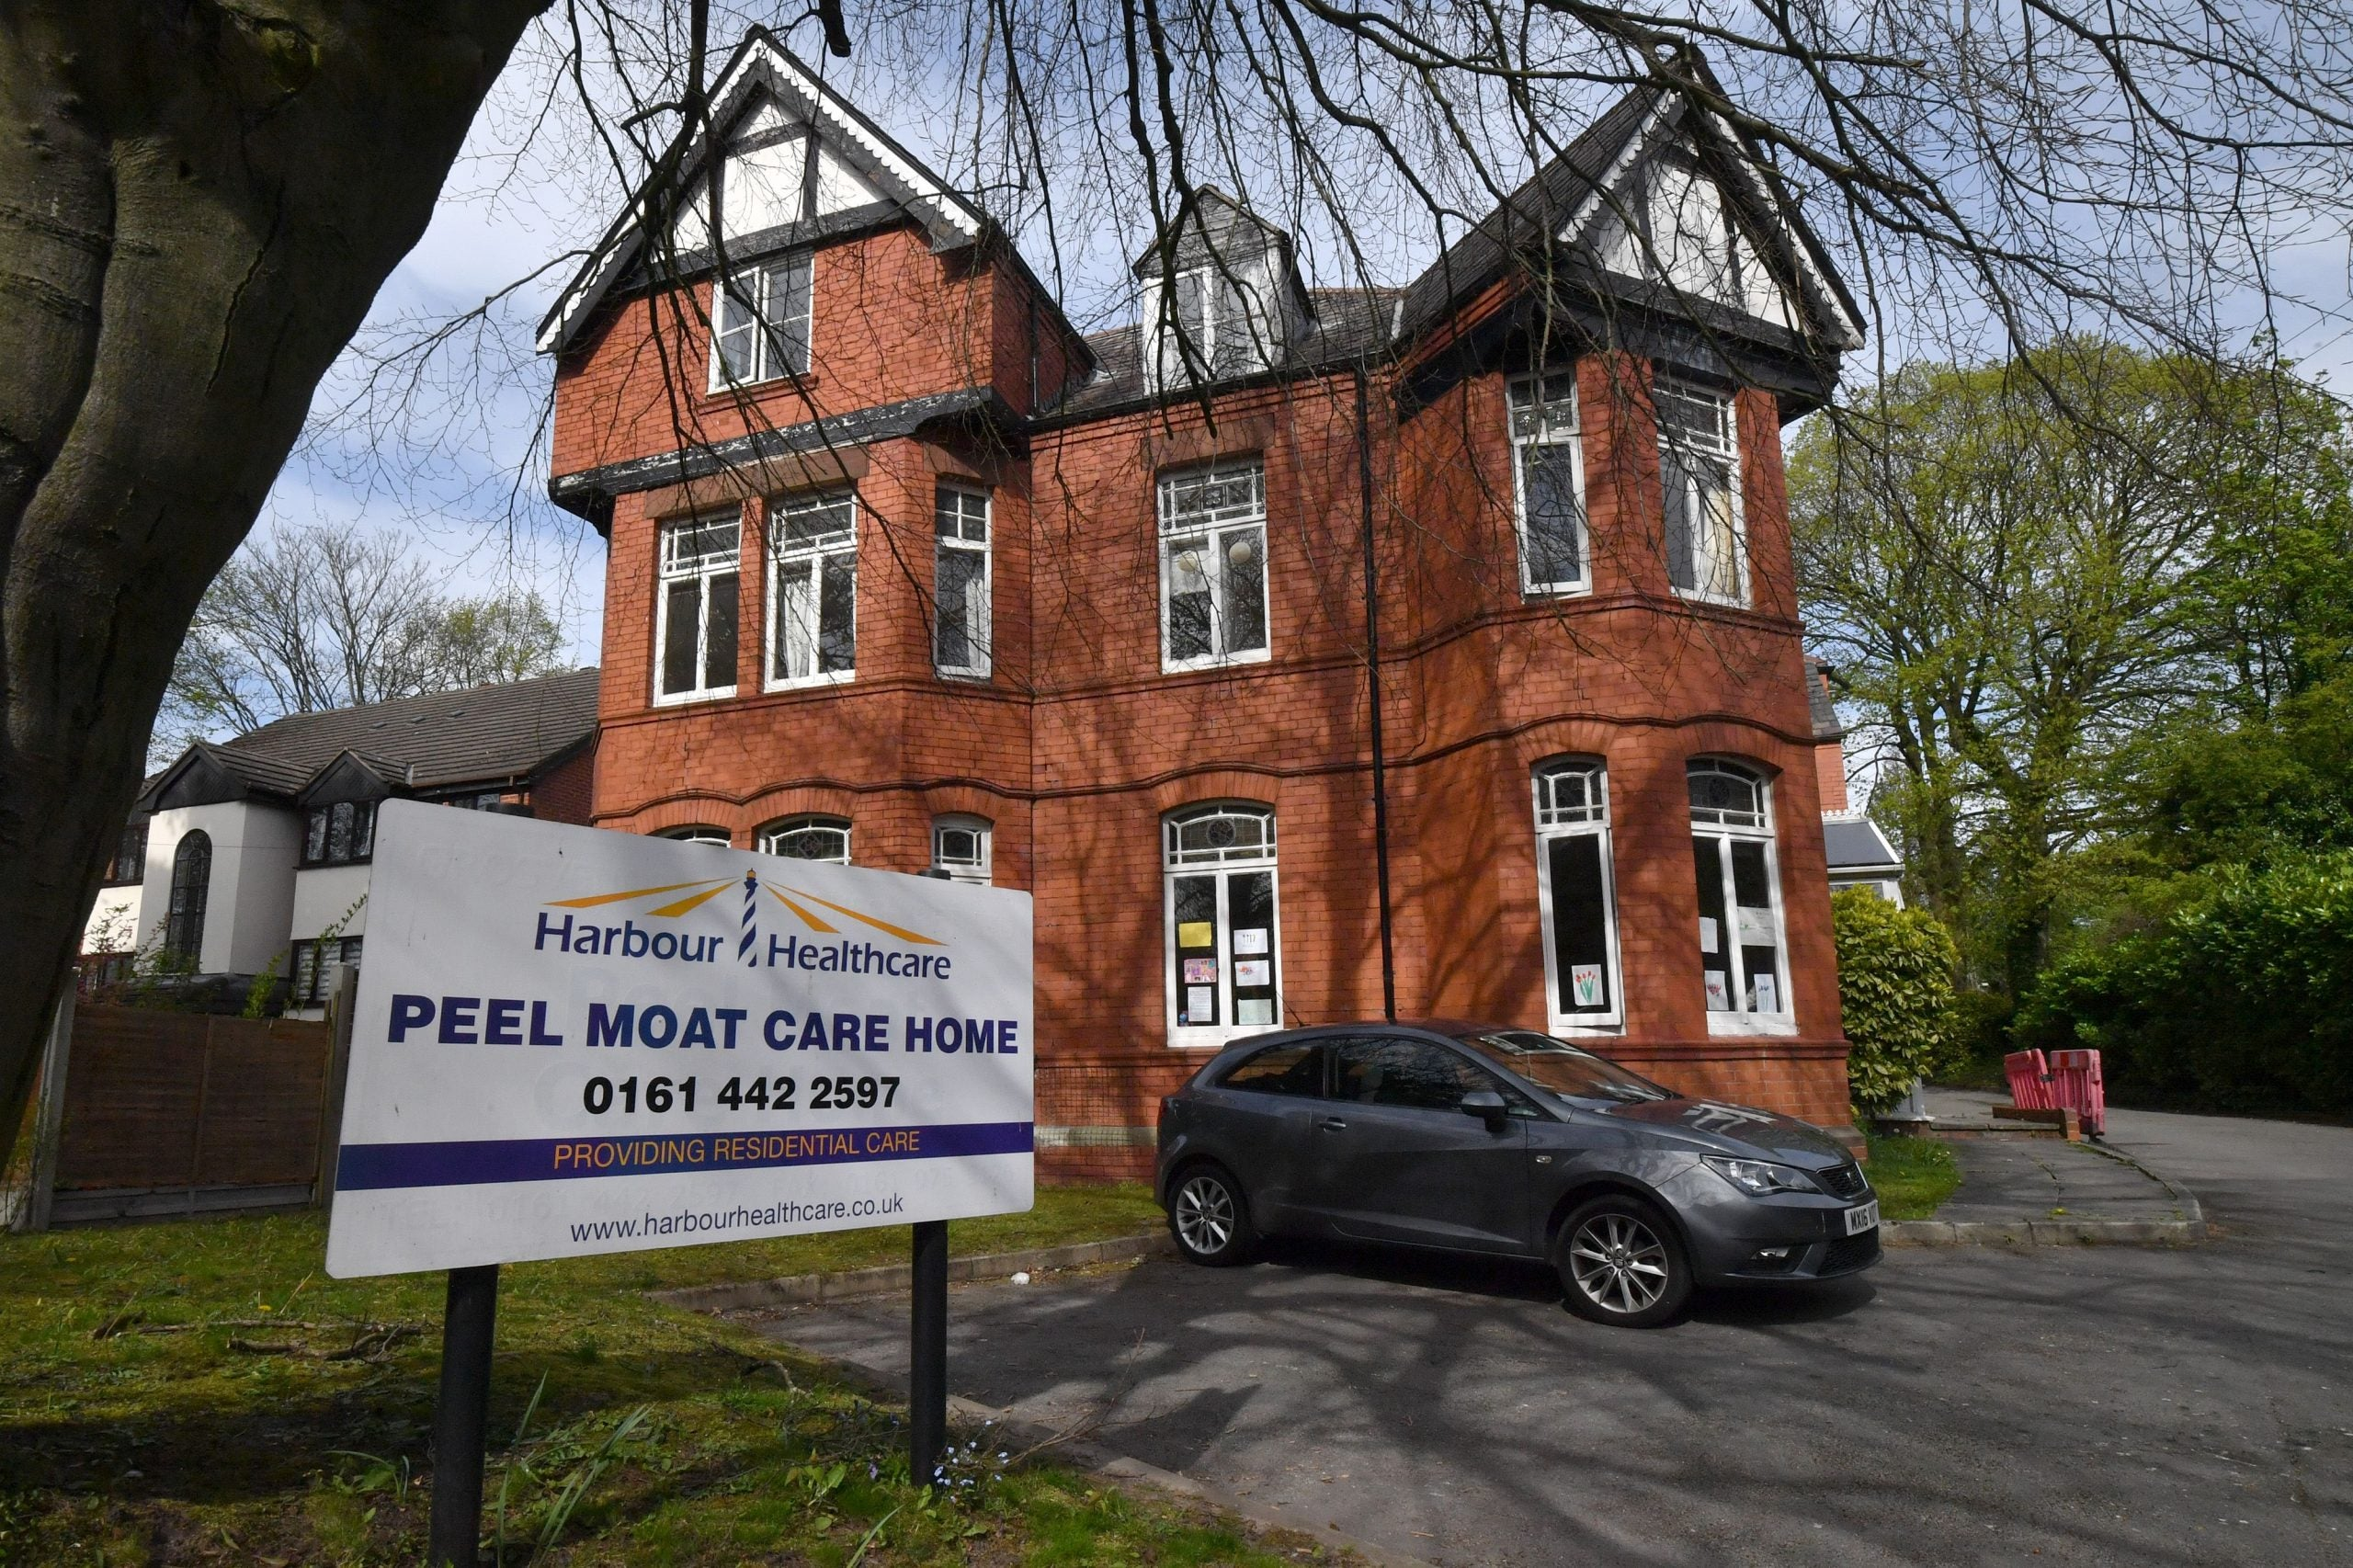 Dr Phil Whitaker: Modern medicine is good at keeping people alive but the crisis in care homes is a disgrace